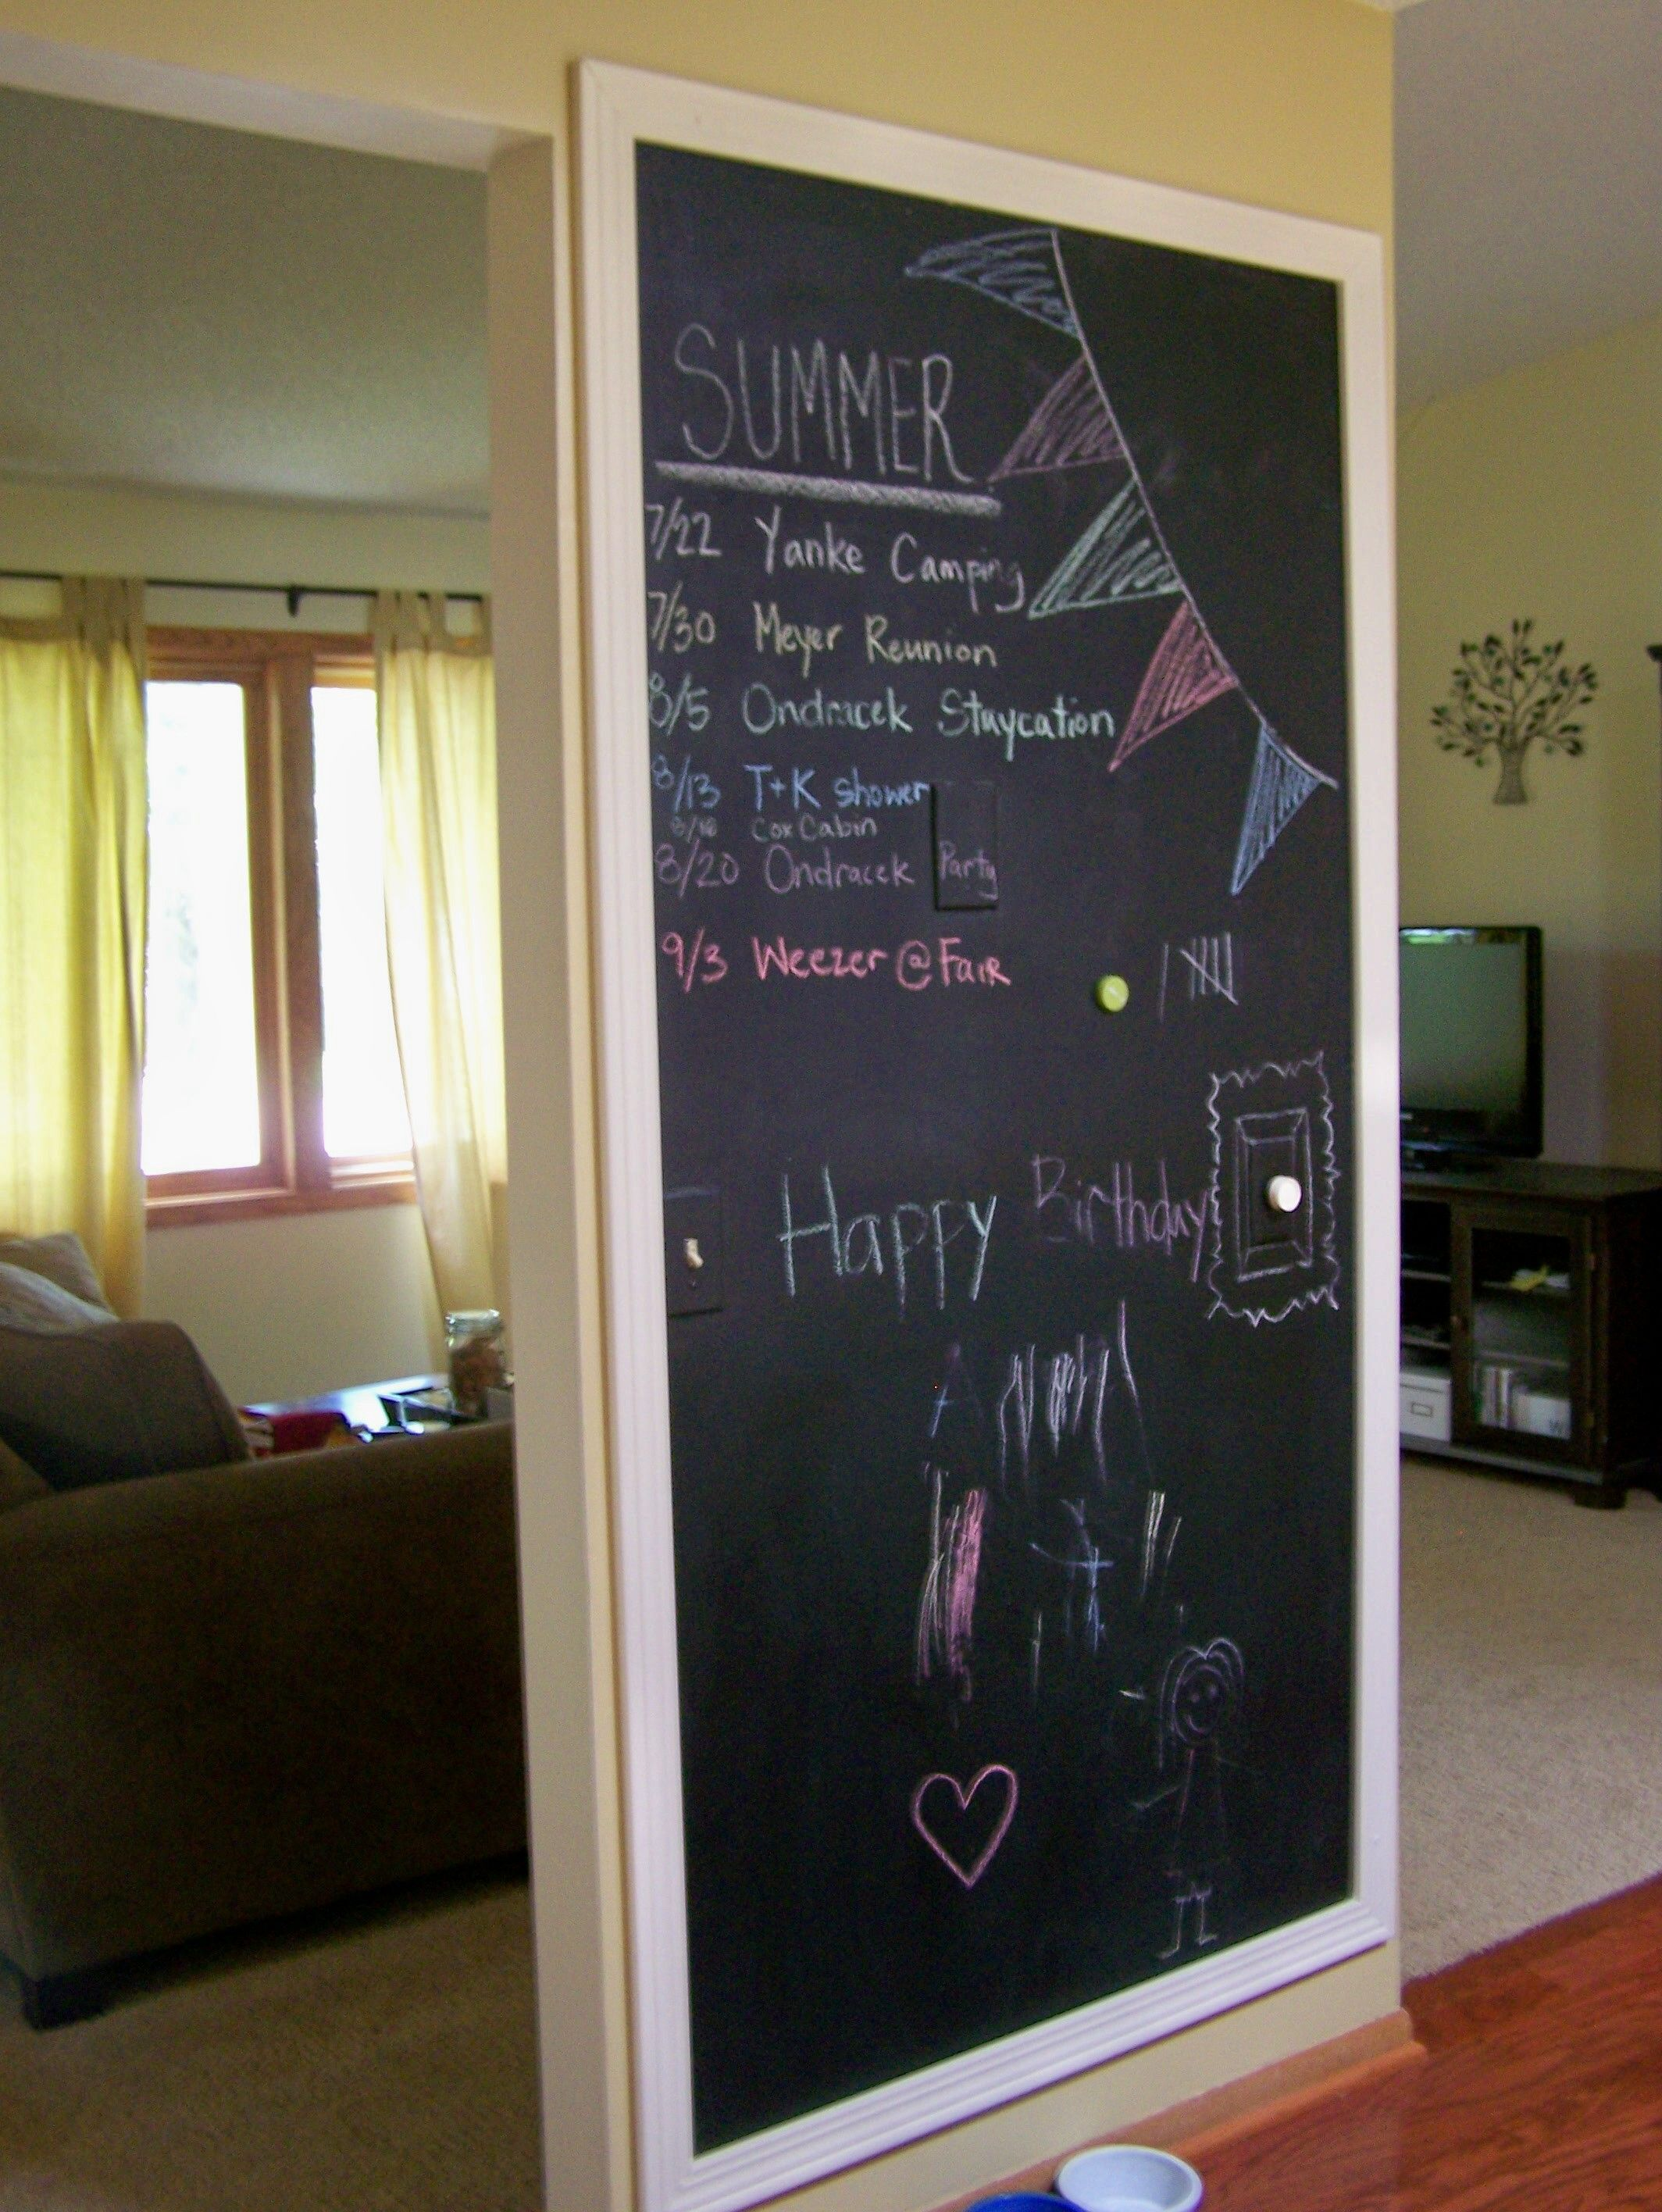 Framed Chalkboard Wall Makes It Look Like A Giant Chalkboard